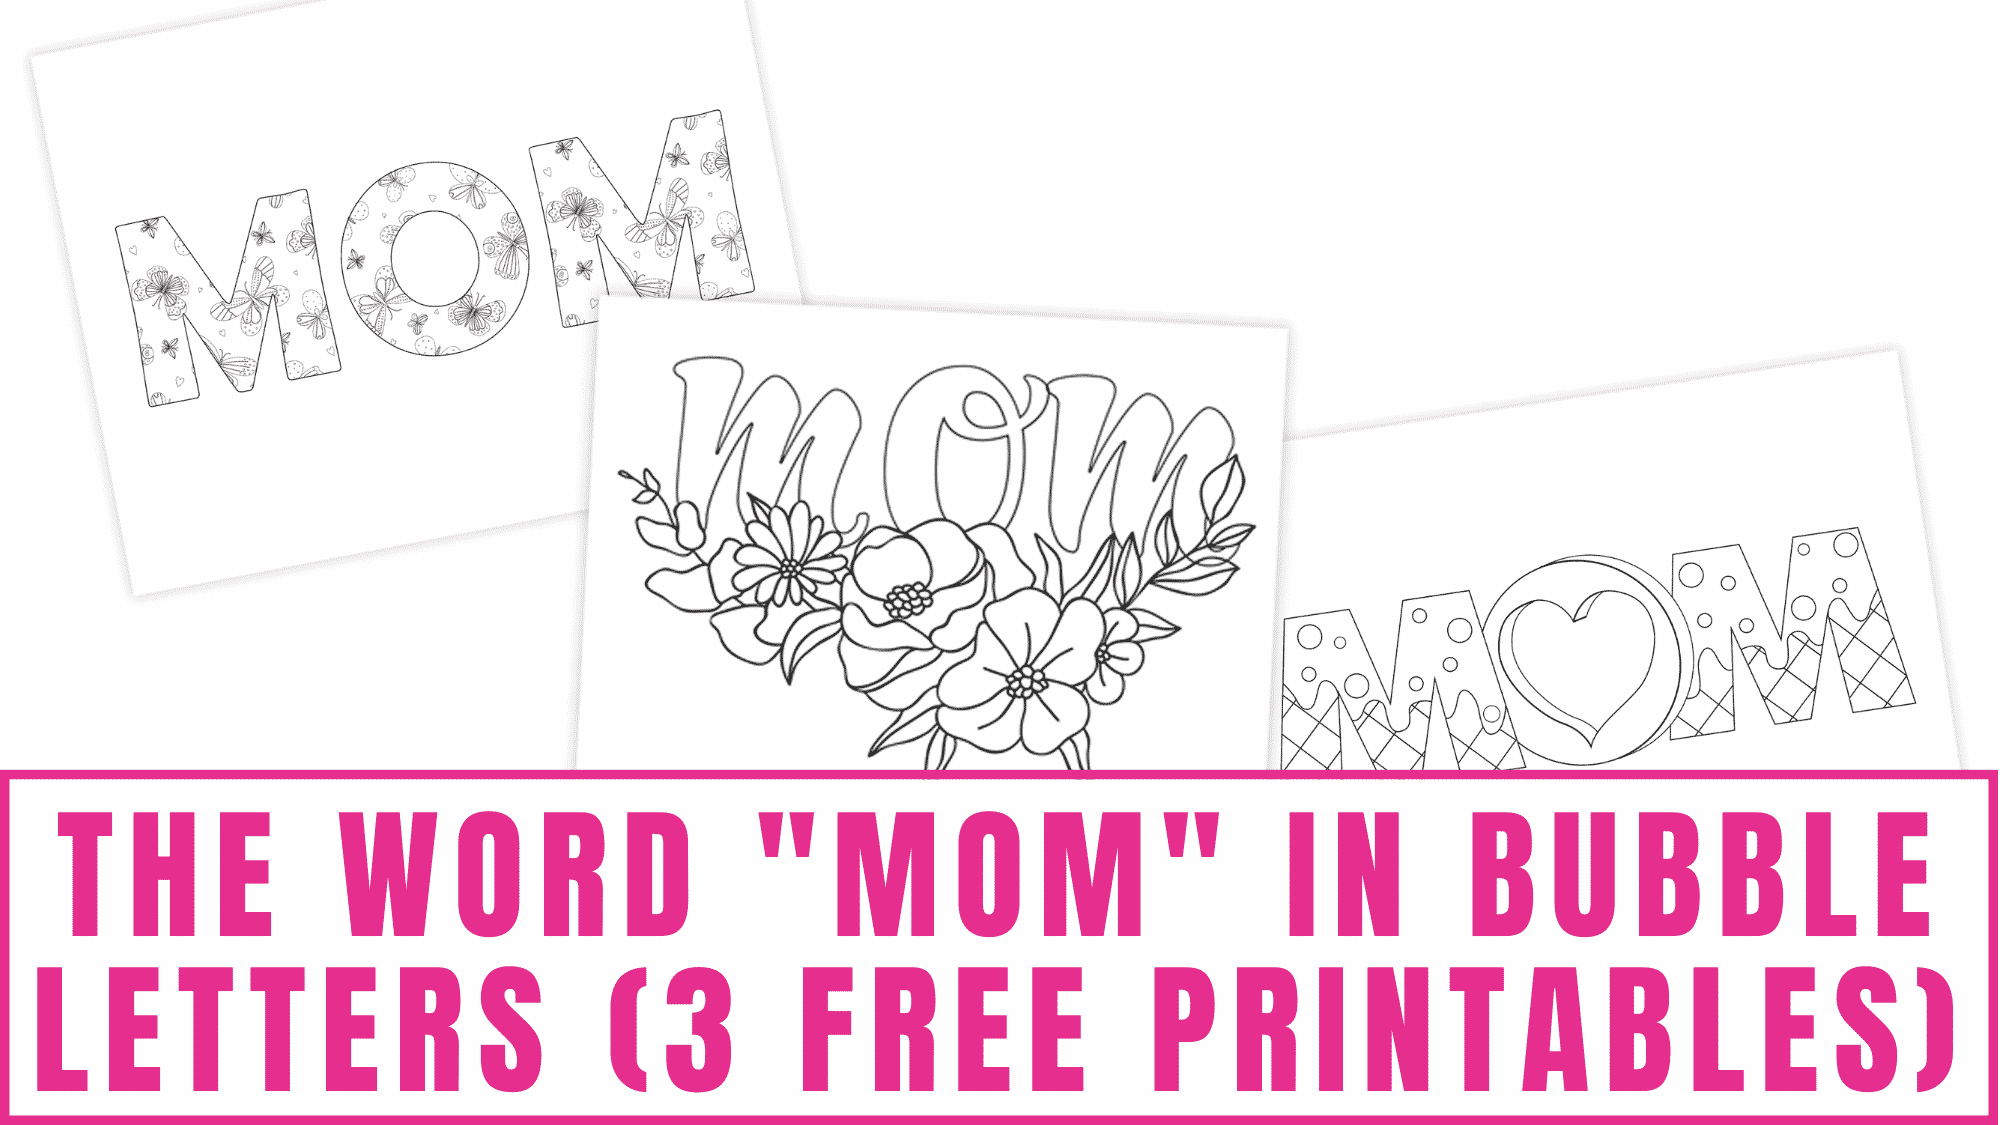 Want to make a sweet craft or card for mom? Use the word mom in bubble letters. Free printables like these can elevate any DIY project.